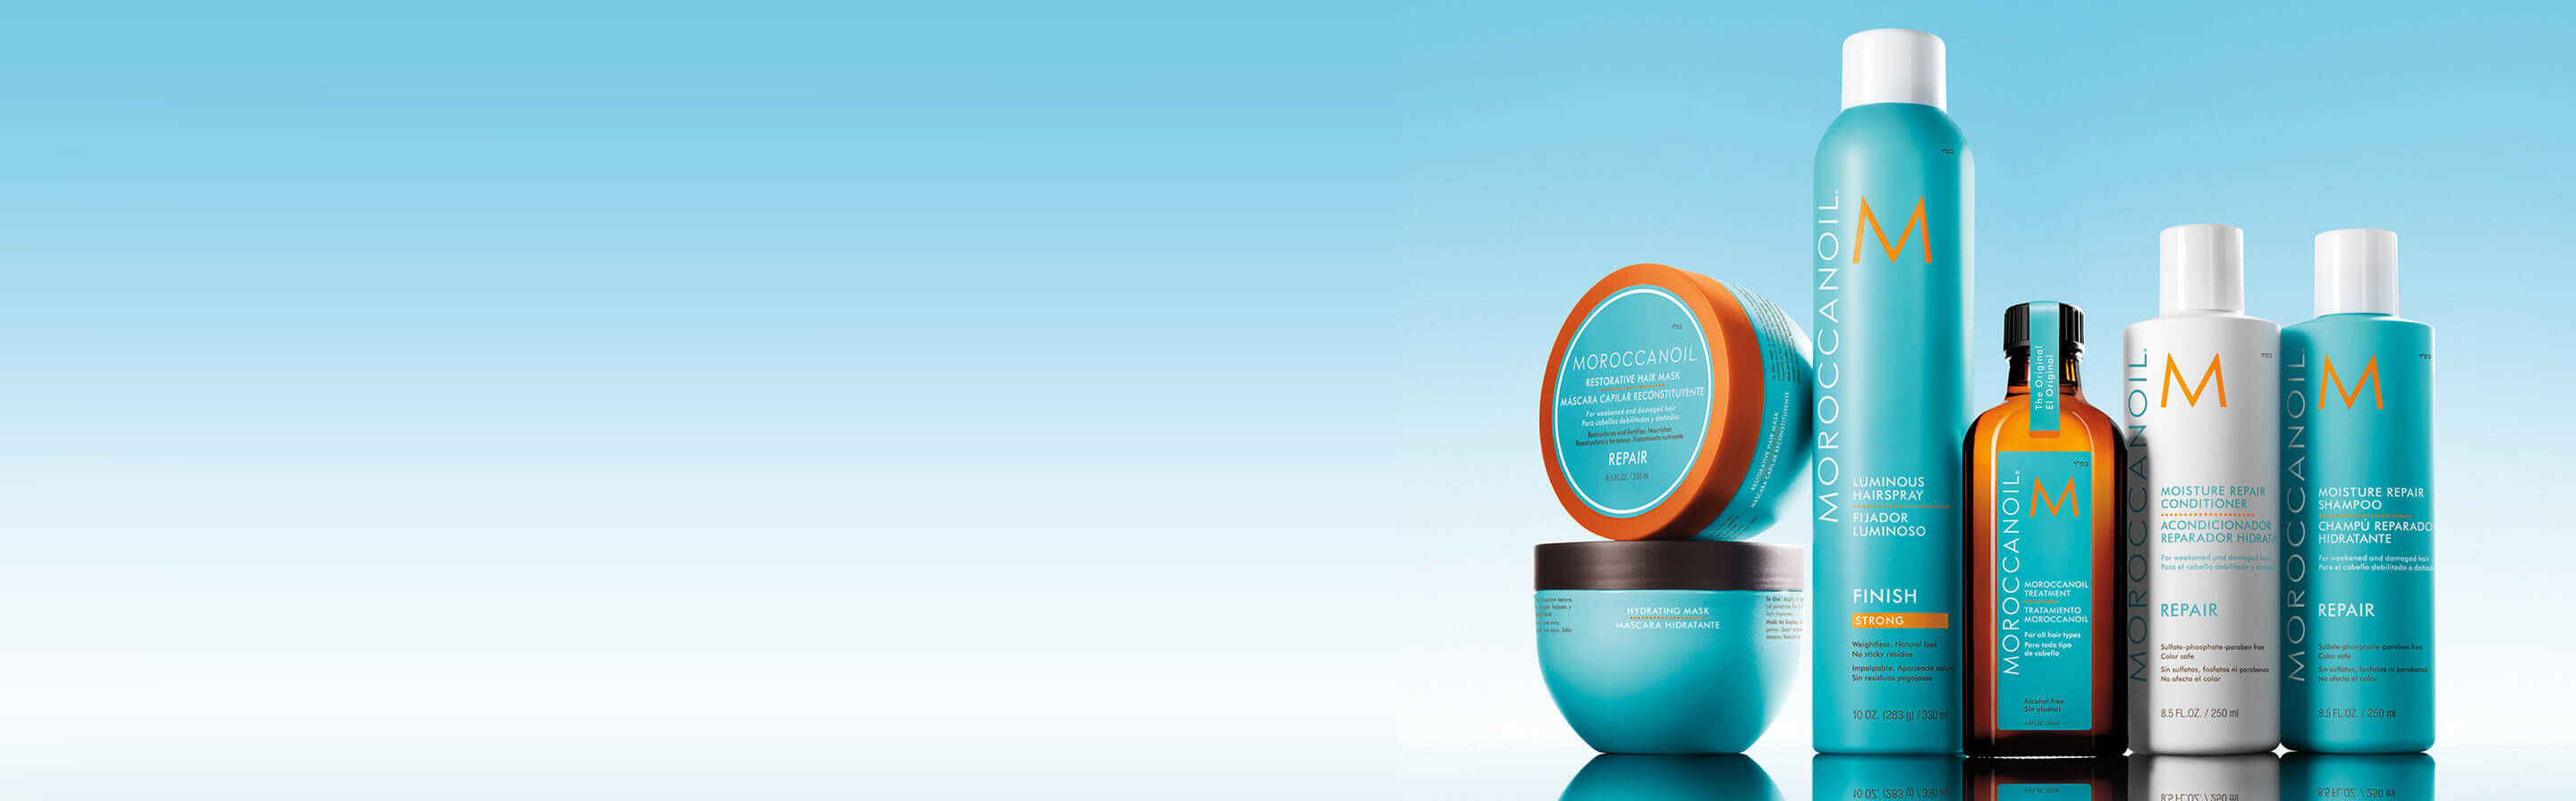 Moroccanoil Hair Treatments